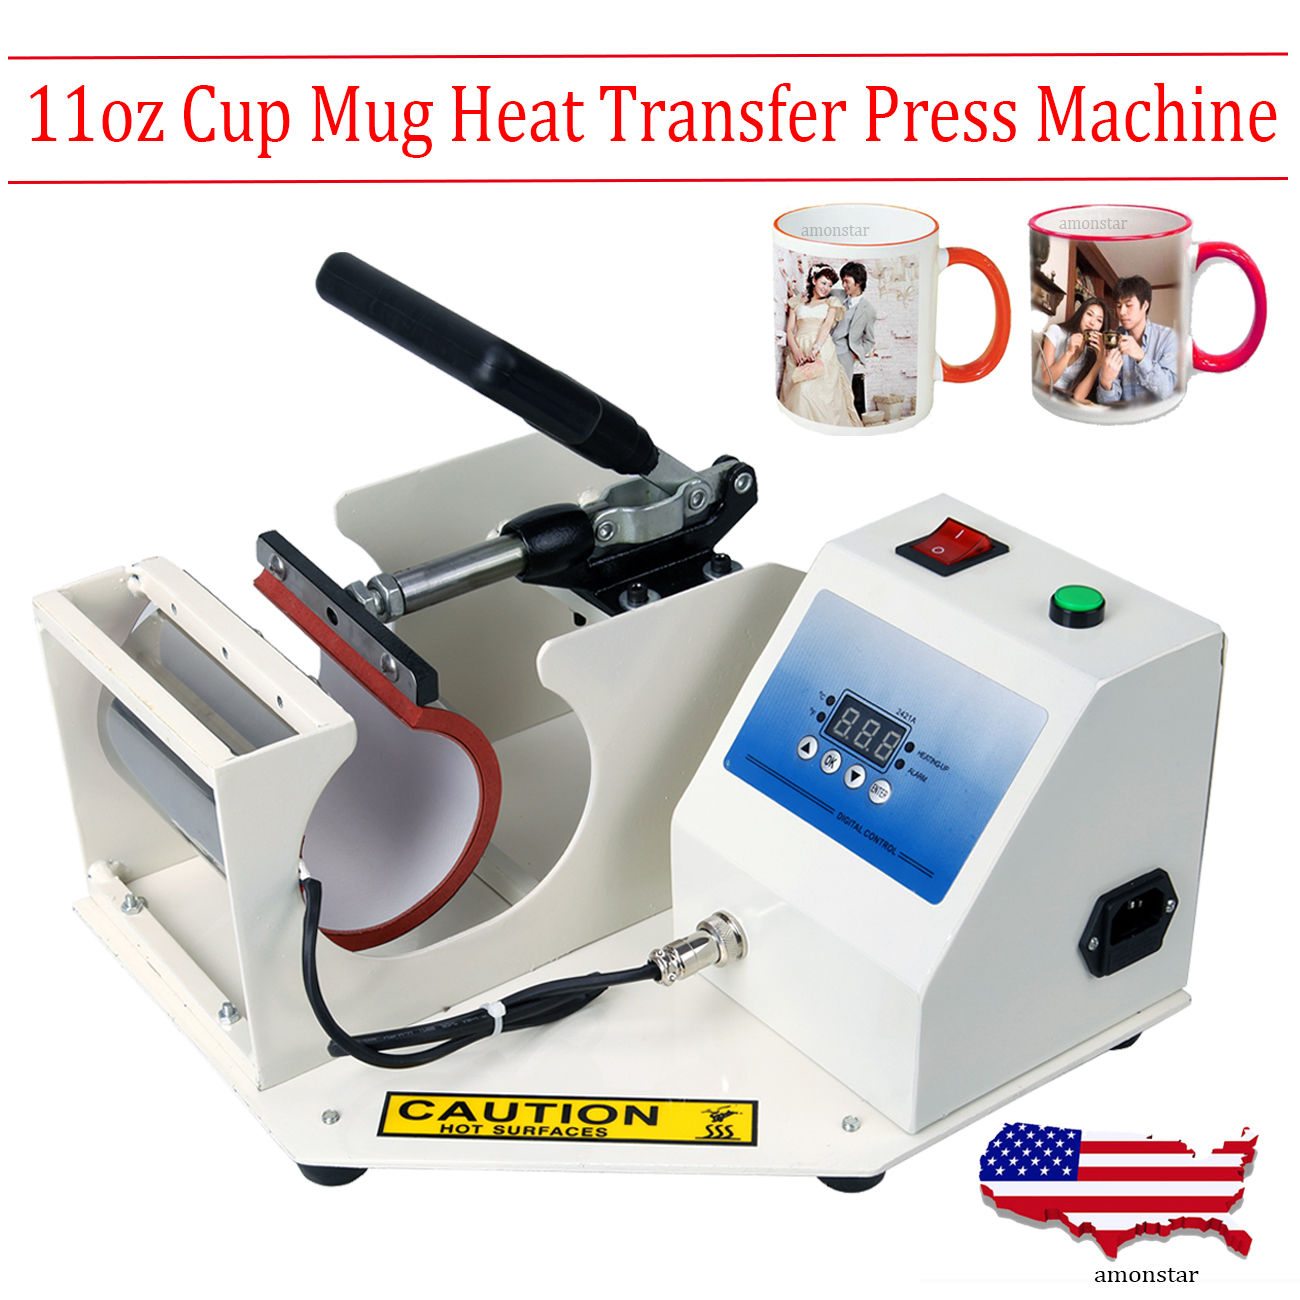 Display Mug Heat Transfer Press Machine 250 Degree Cup Sublimation Printing 11oz new design single display 7 in 1 heat press machine mug cap plate tshirt heat press sublimation machine heat transfer machine